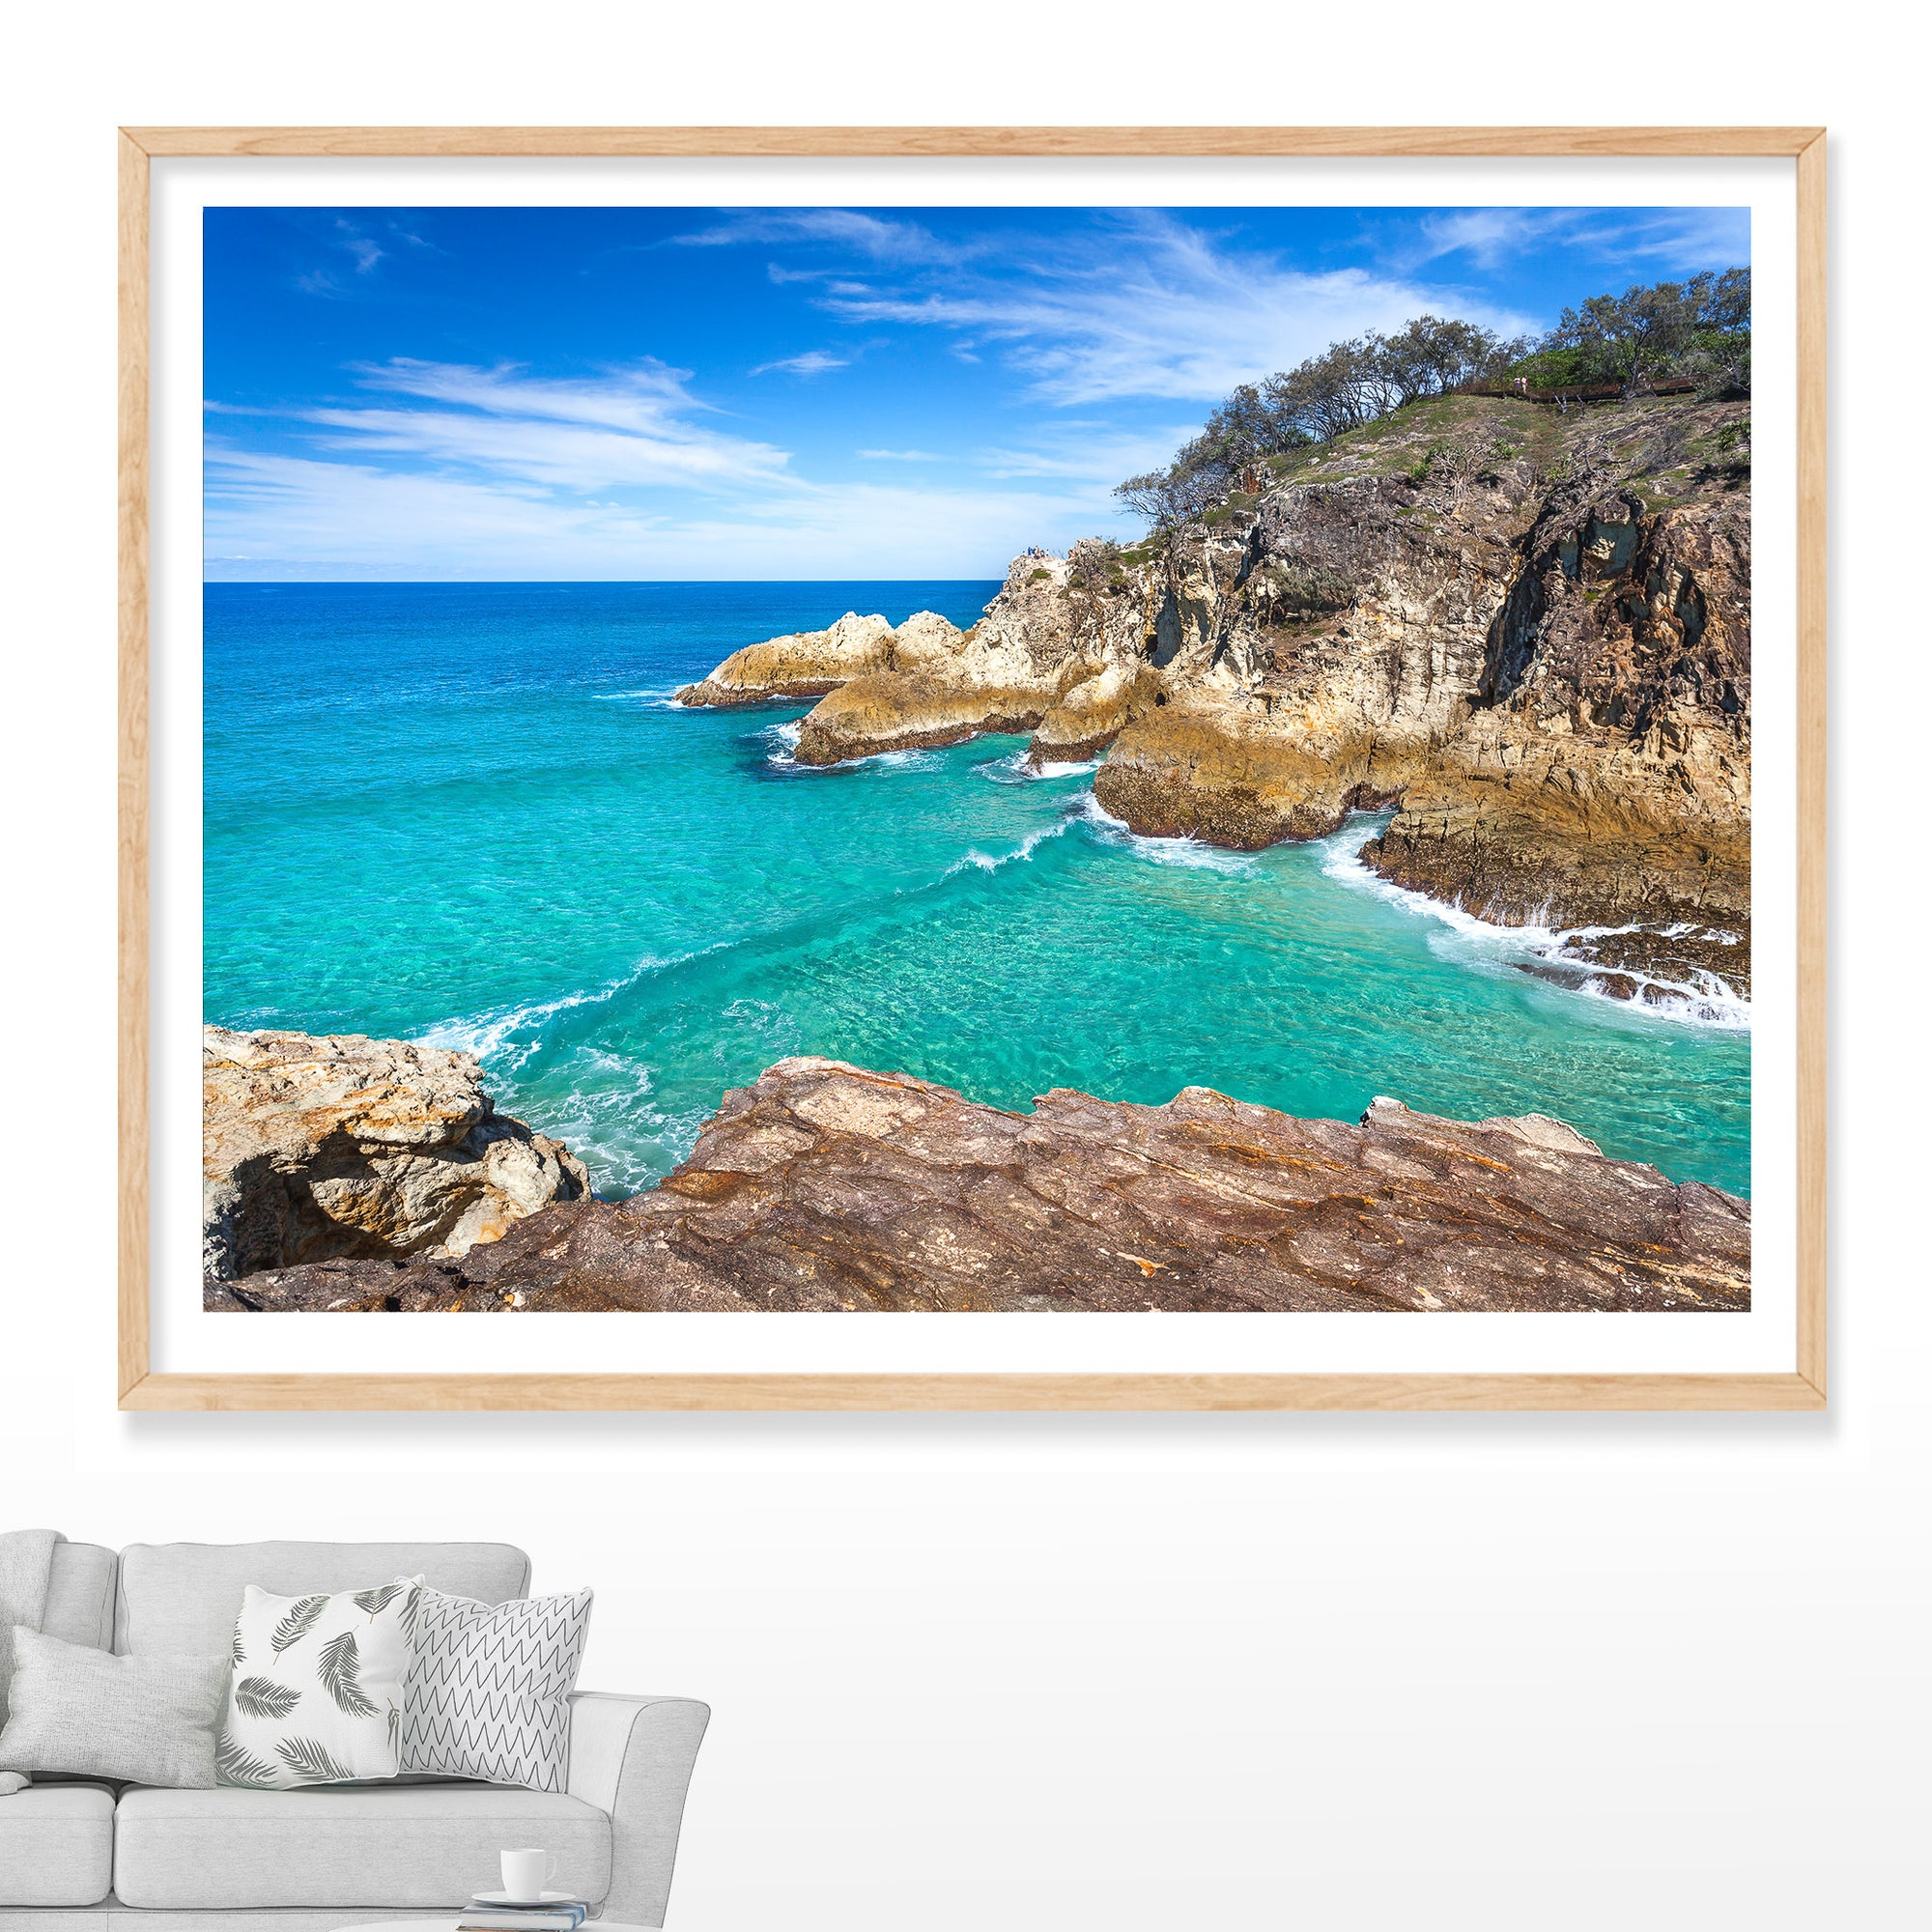 North Gorge Rocks with crystal clear water on a sunny day at North Stradbroke Island  on North Stradbroke Island, Wall Art photography by Julie Sisco Snapshots of Straddie Gallery